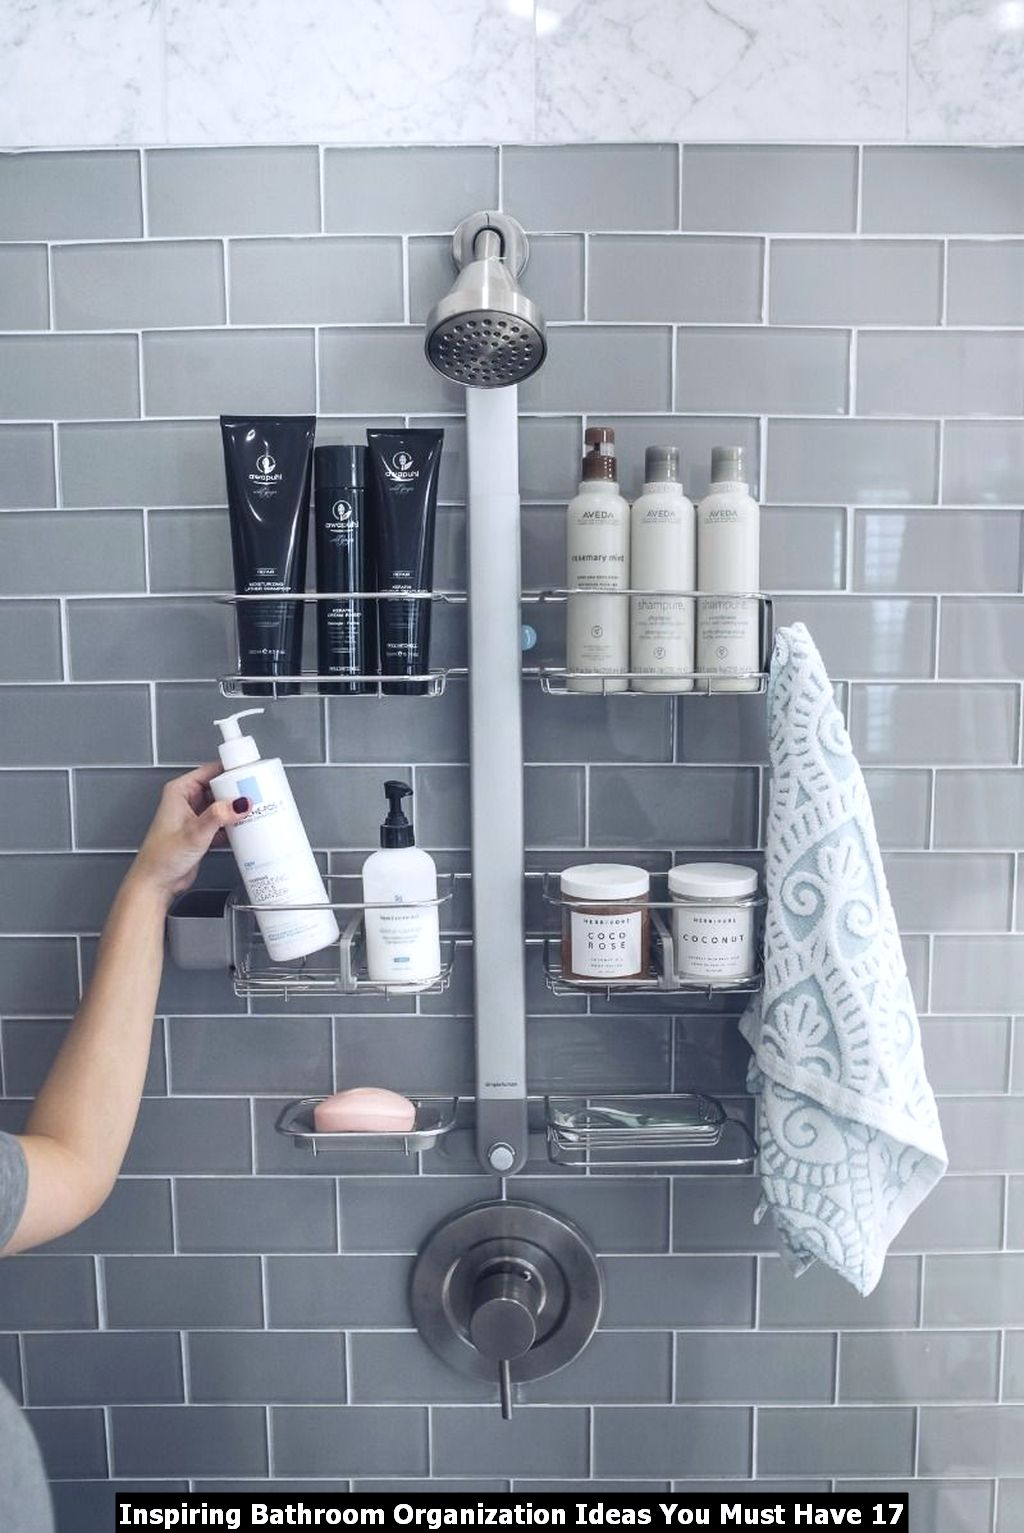 Inspiring Bathroom Organization Ideas You Must Have 17